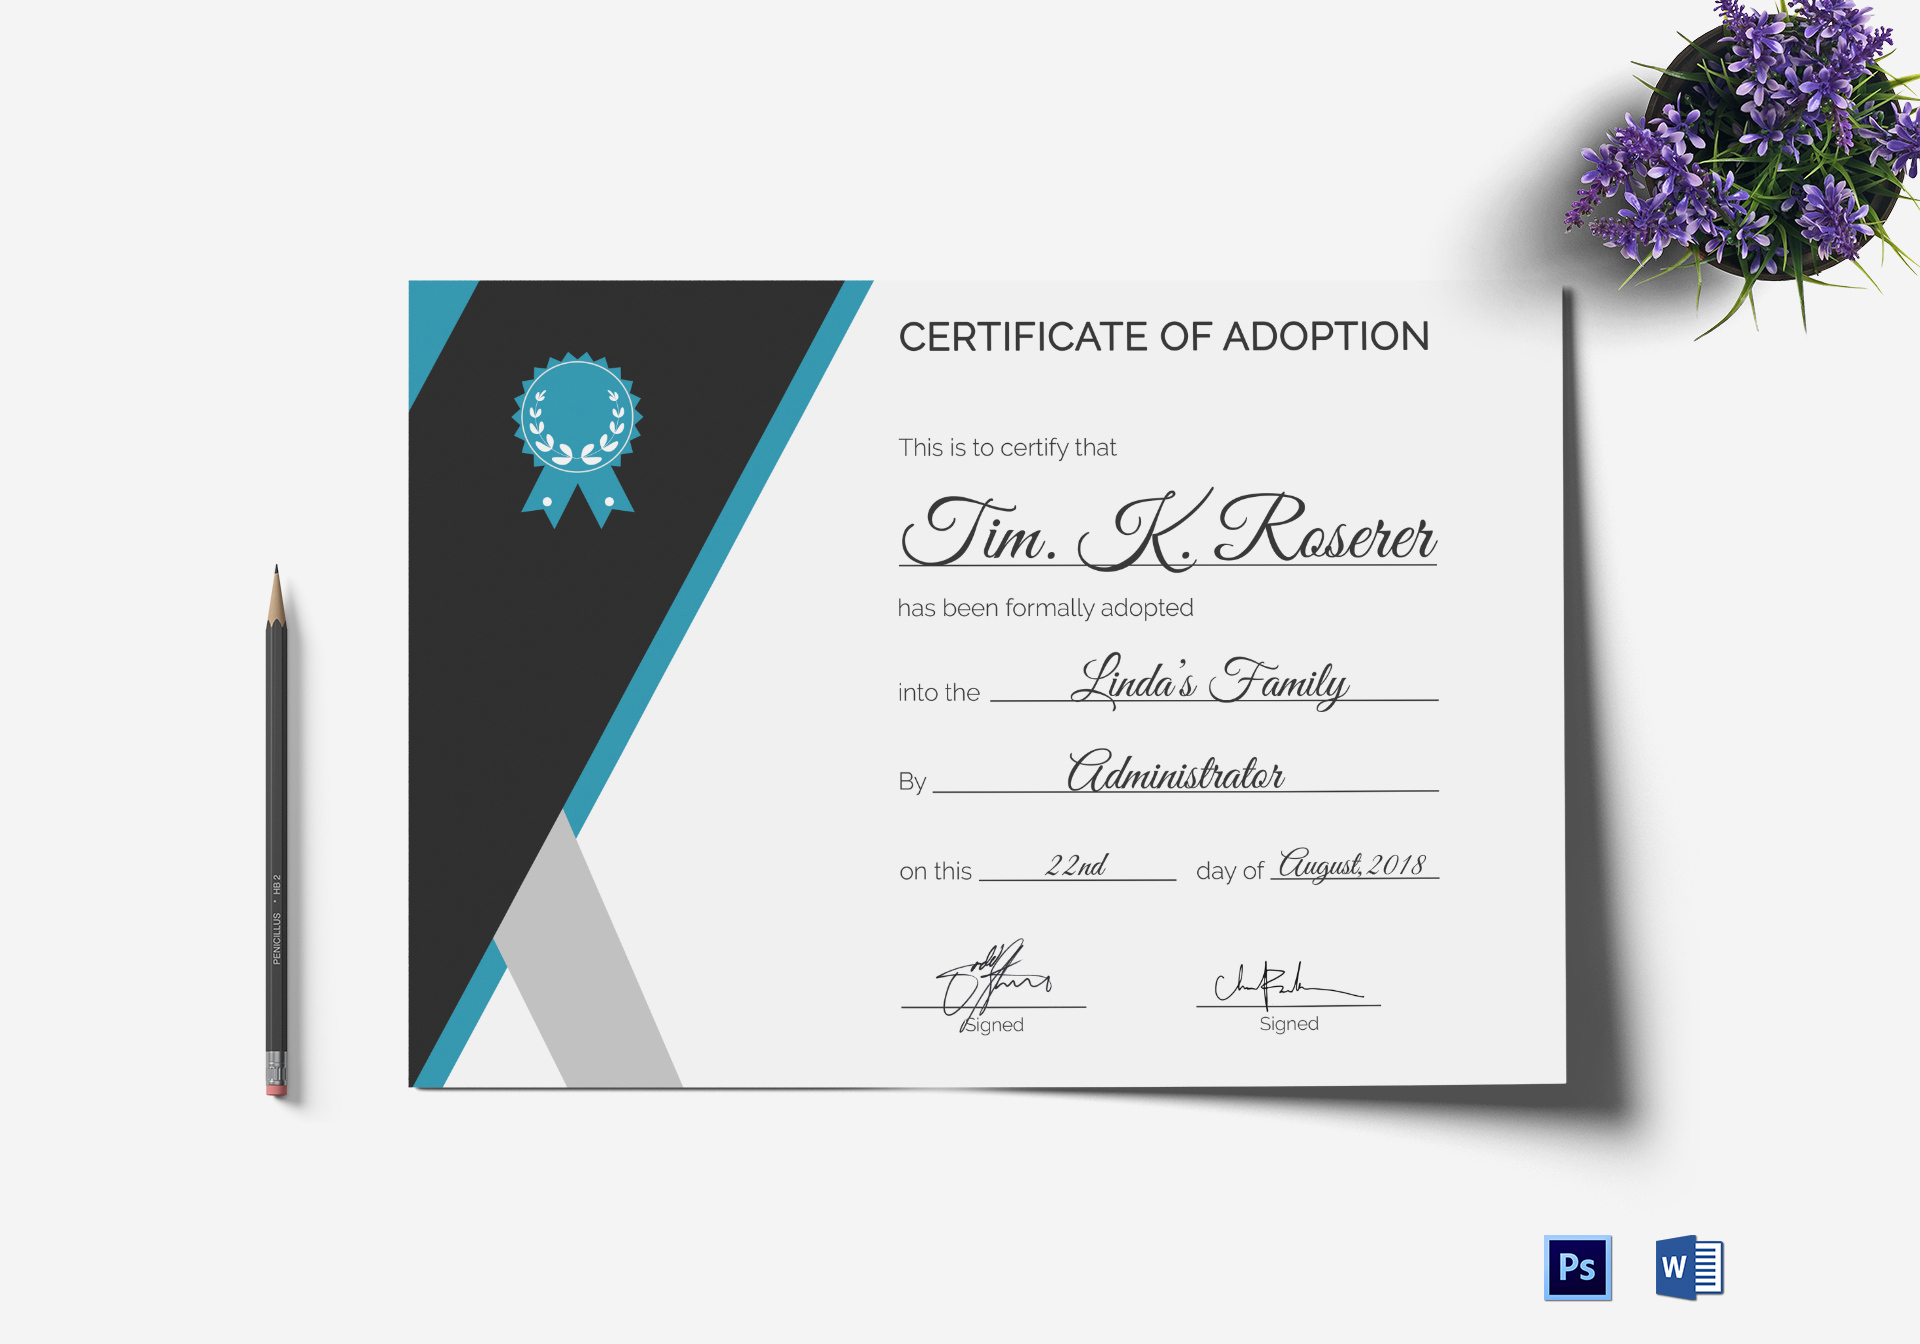 Adoption Certificate Template In Psd Word within Best Adoption Certificate Template